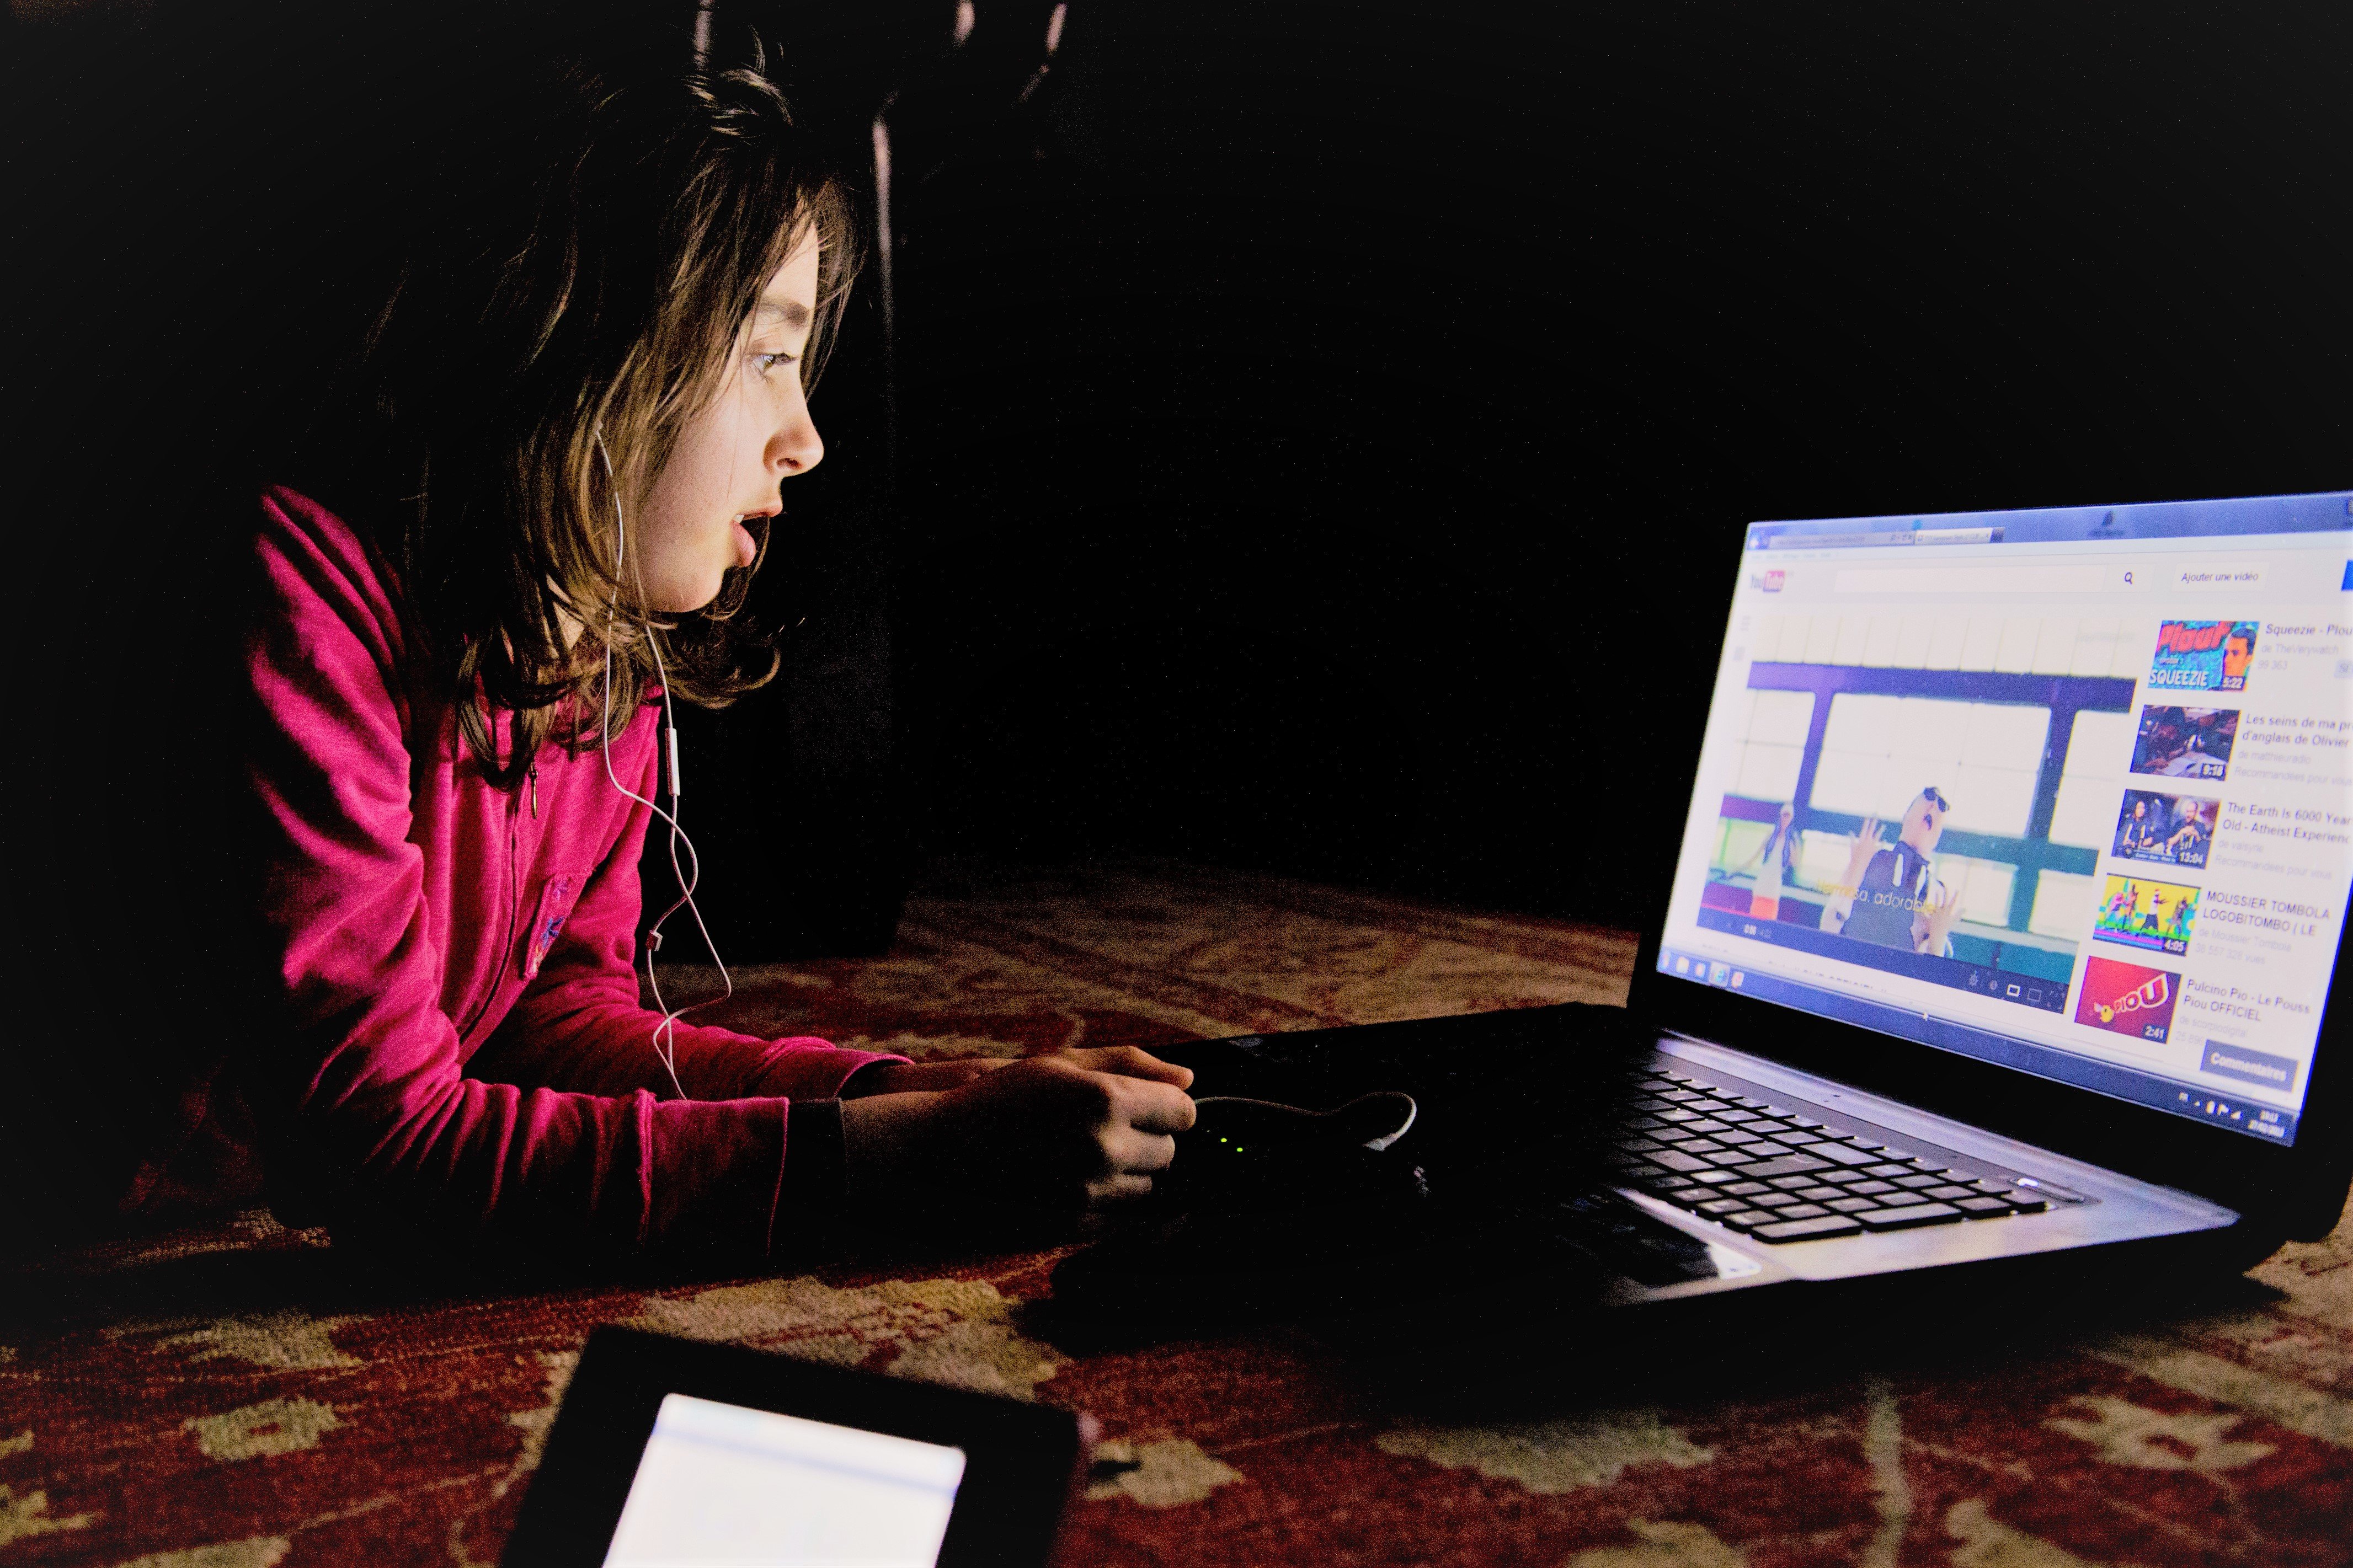 Girl Watching a Video on Youtube on Computer Laying on Carpet Floor